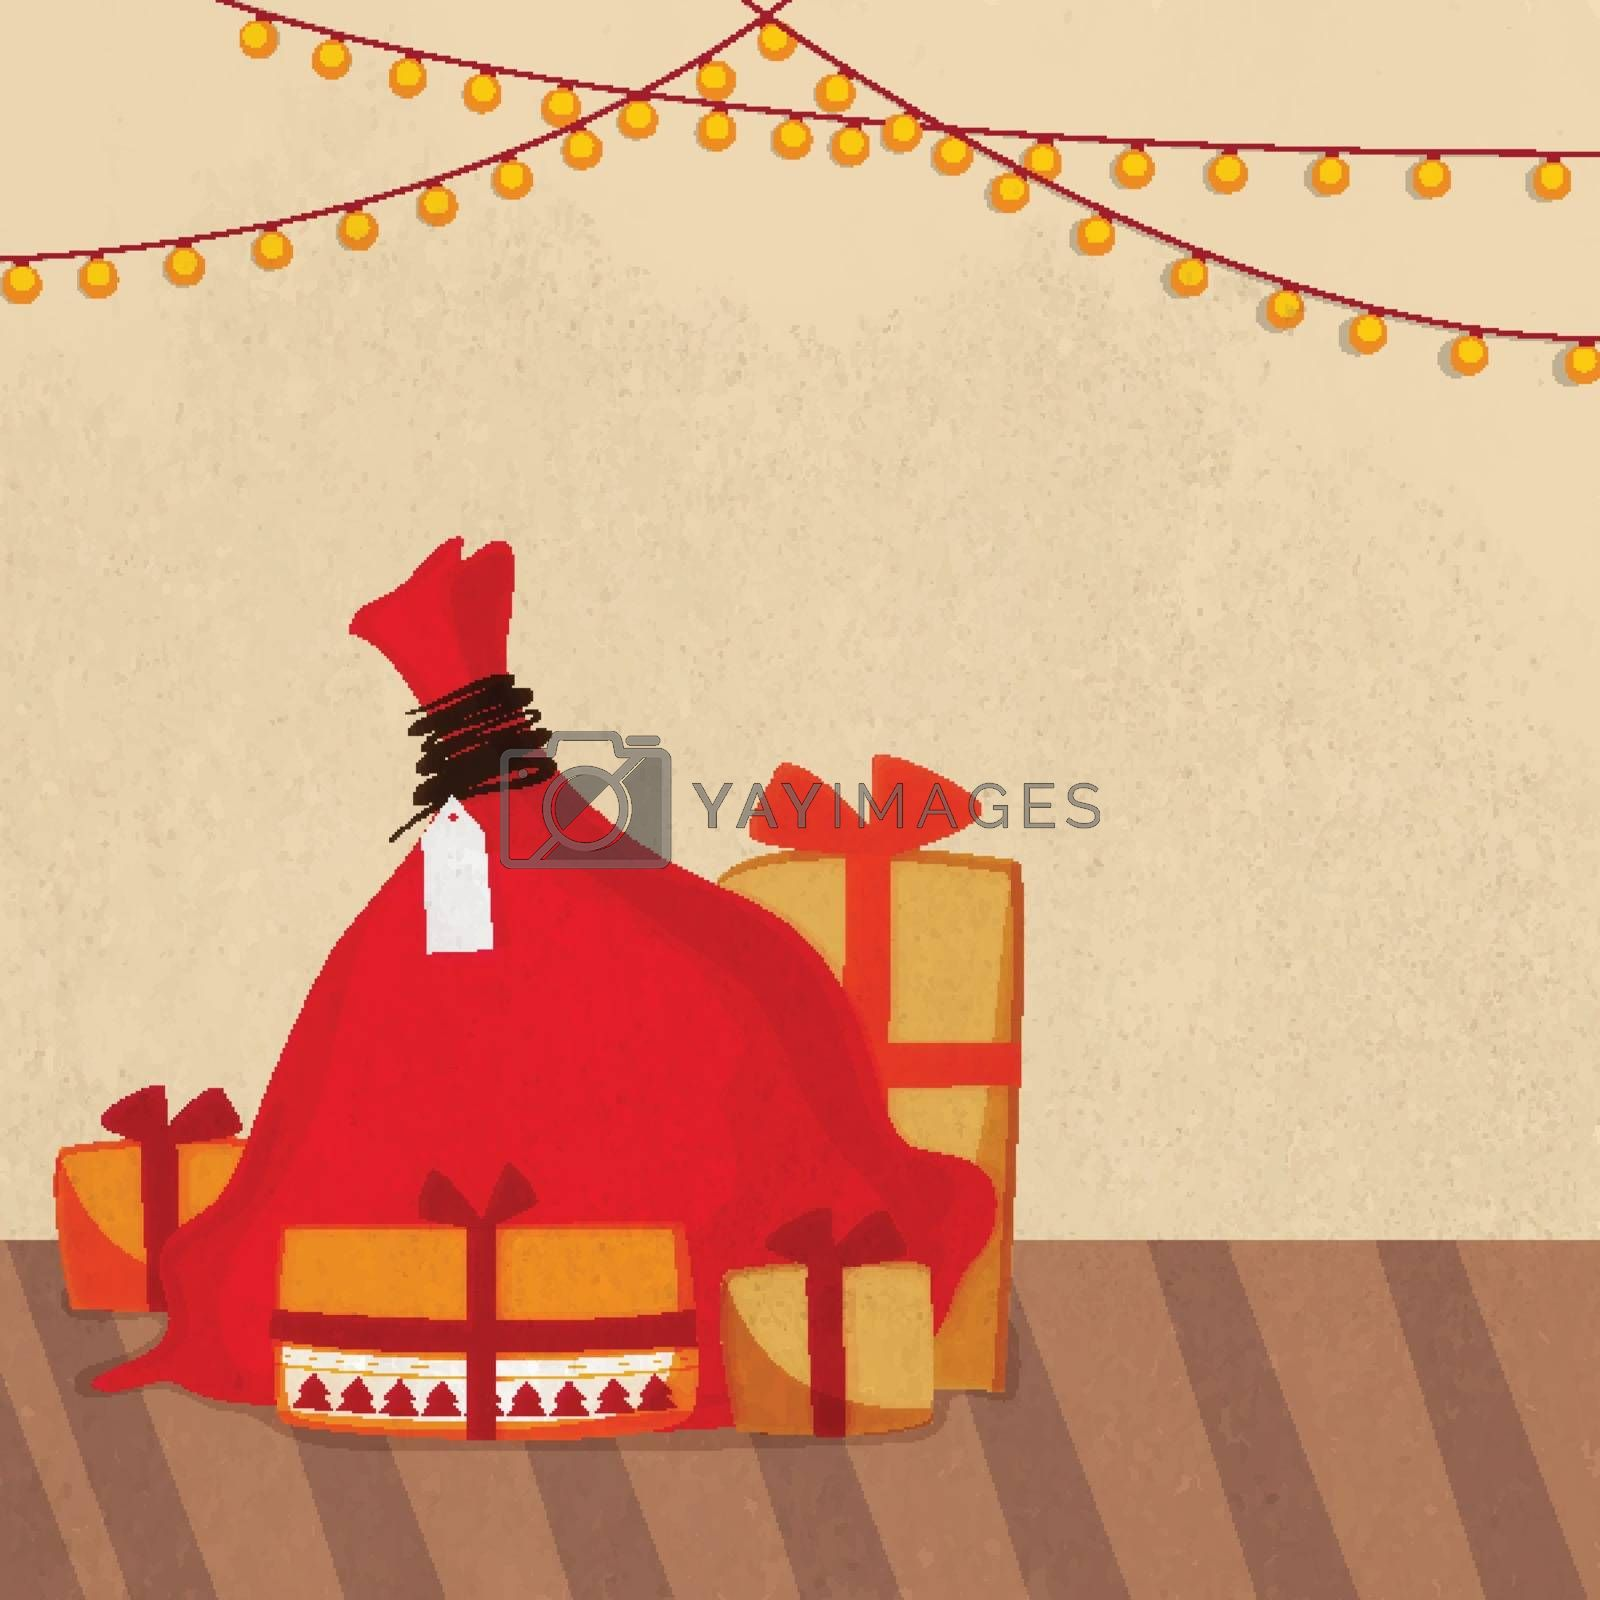 Merry Christmas celebration background with red gift sack and boxes on lights decorated background.